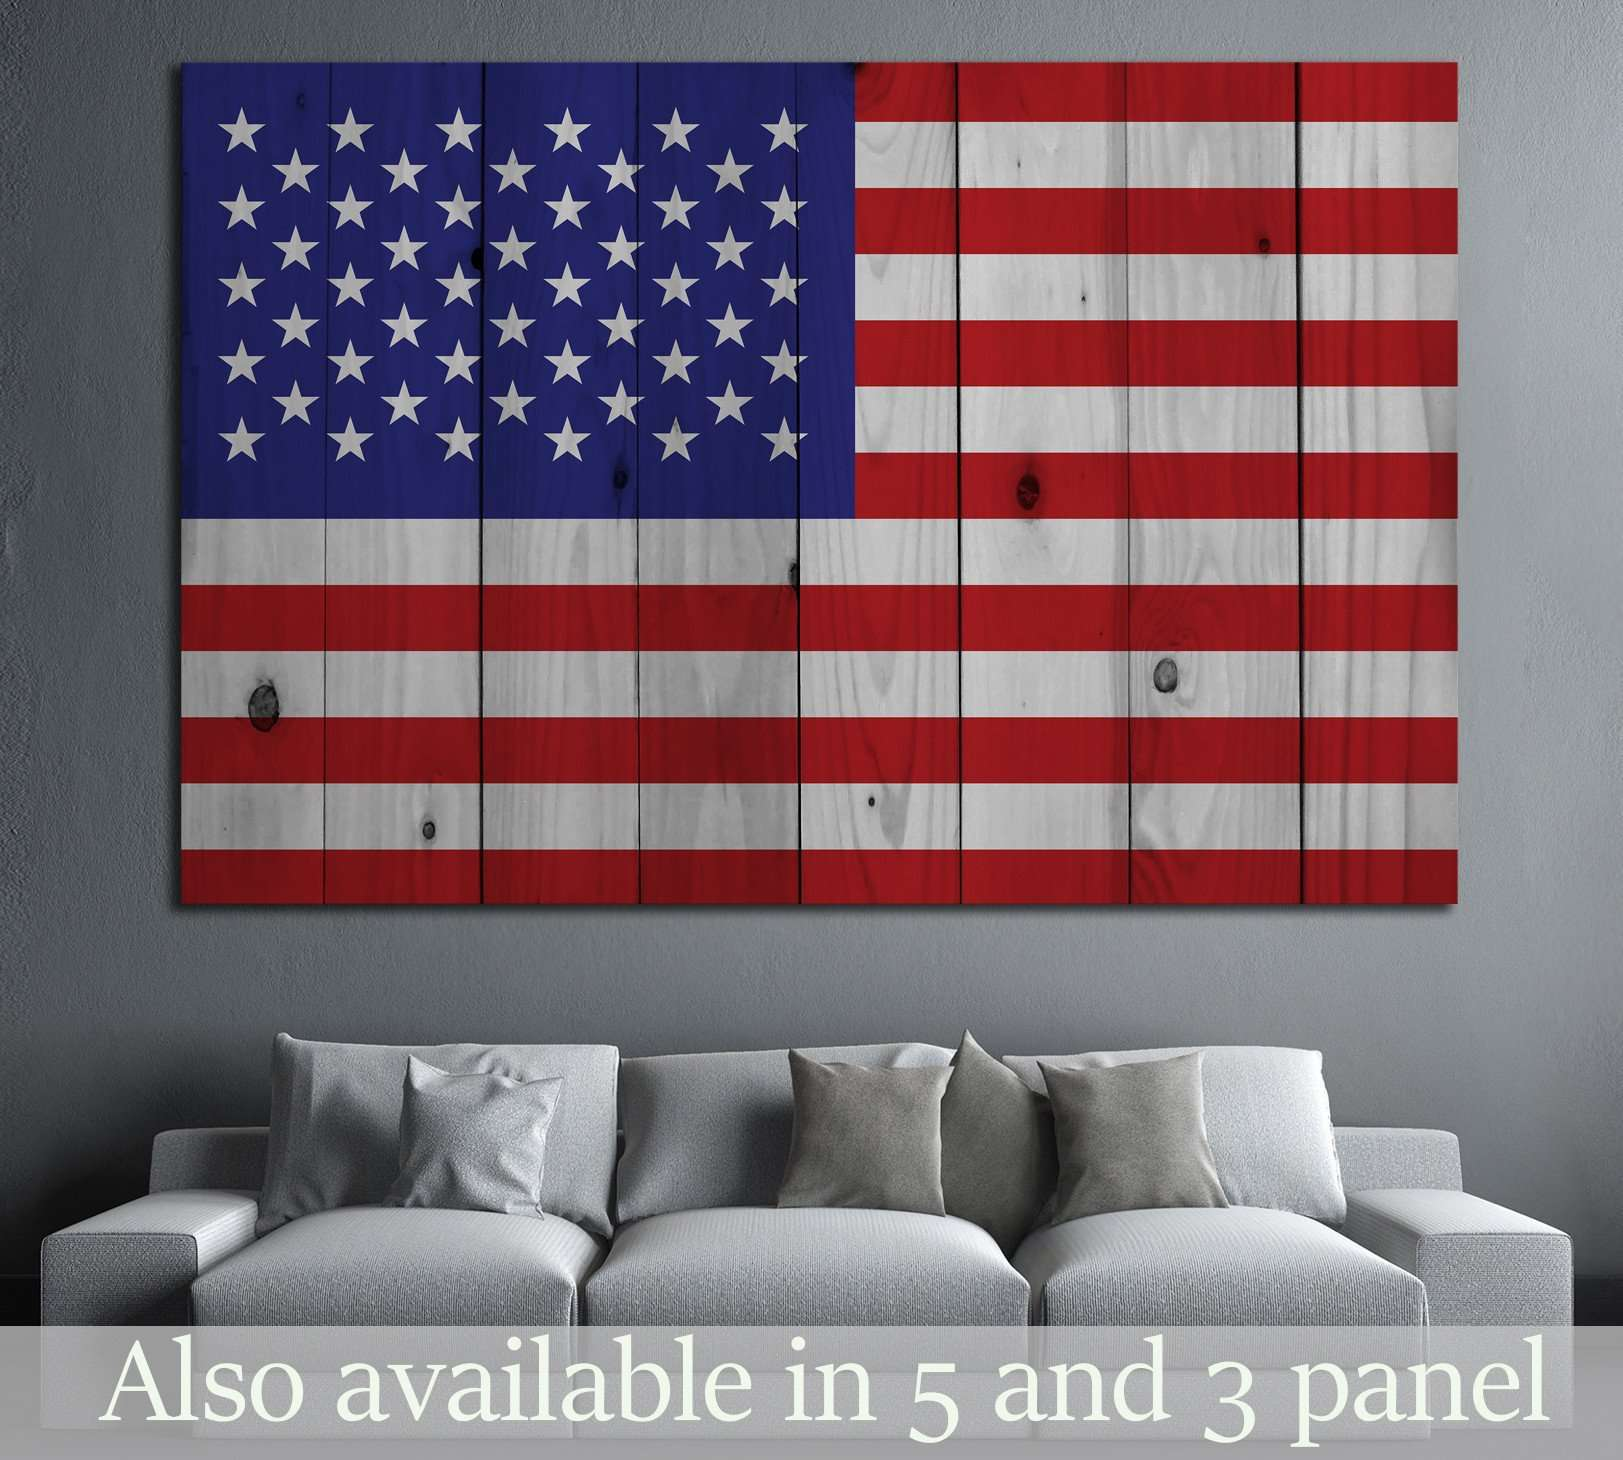 American flag №670 - canvas print wall art by Zellart